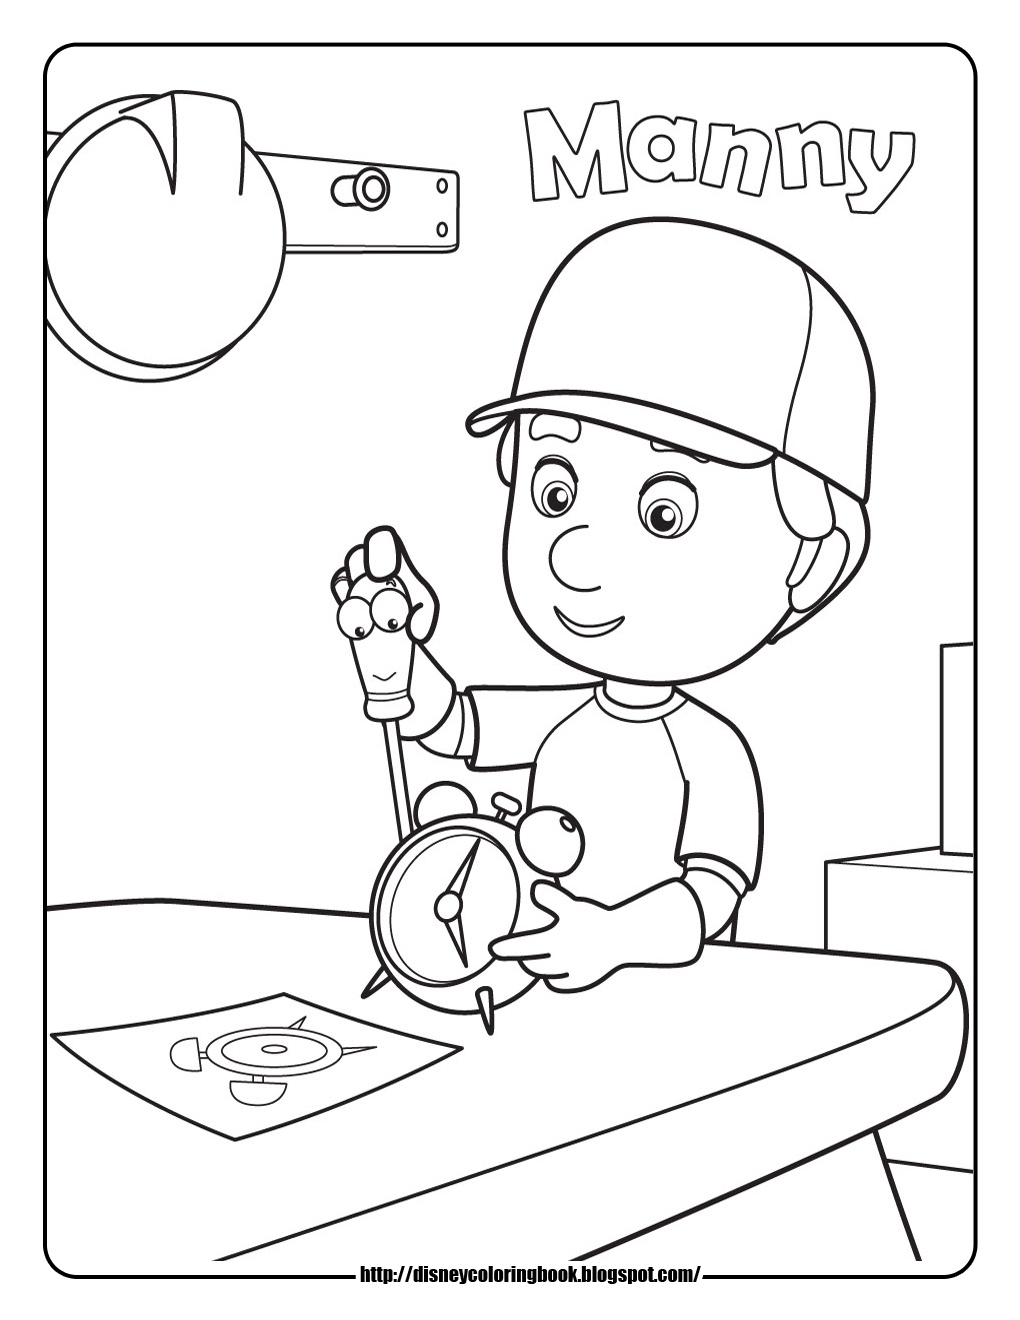 Handy Many Coloring Pages